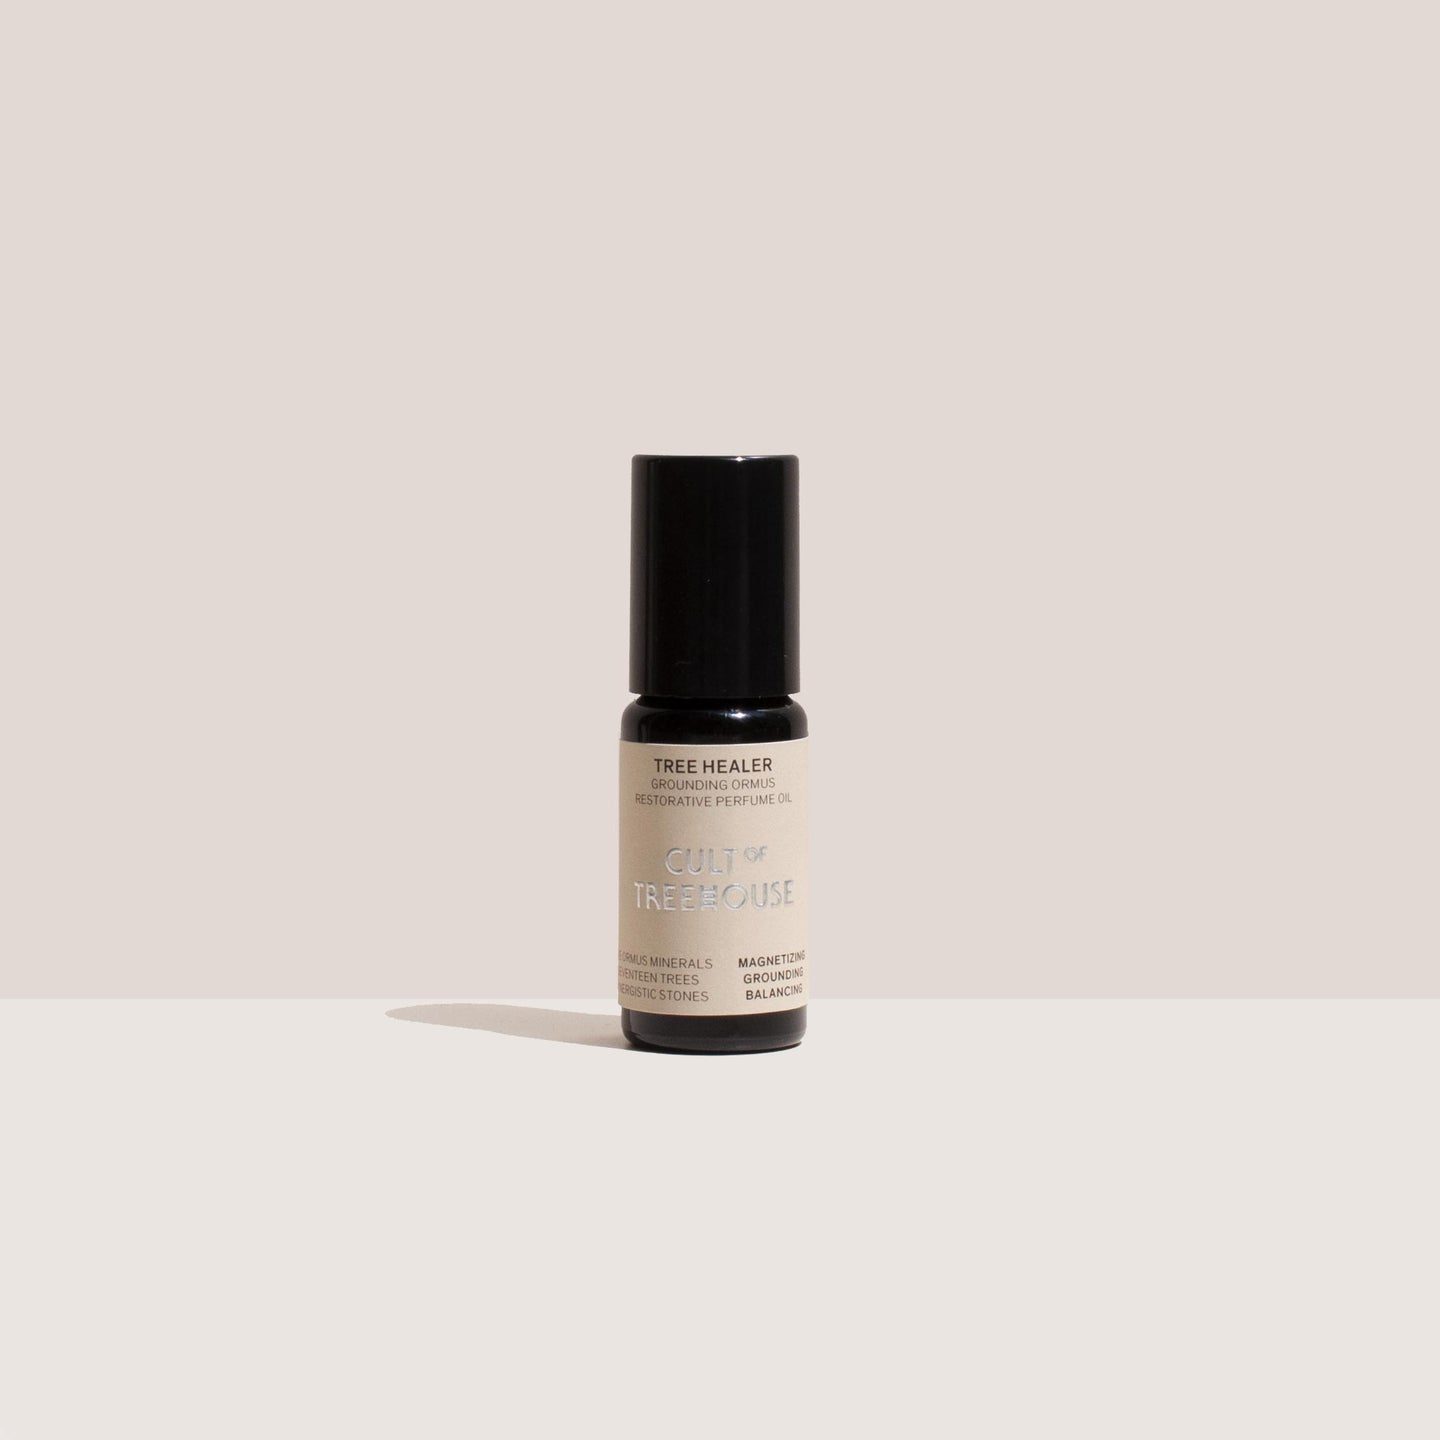 Cult of Treehouse - Tree Healer Perfume Oil, available at LCD.